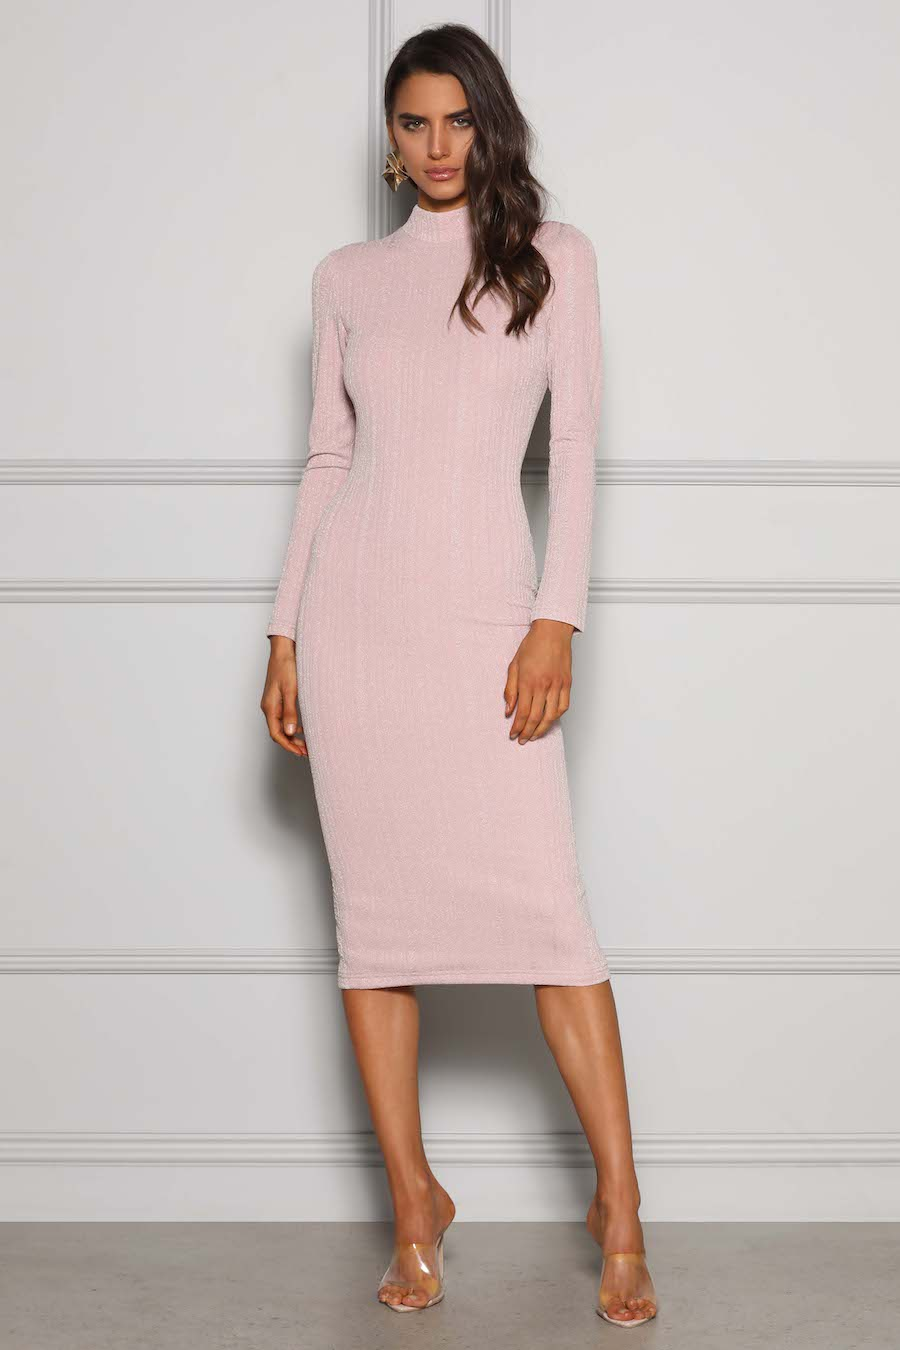 This stunning long sleeve high neck midi dress is crafted out of thick stretch fabric with sheen